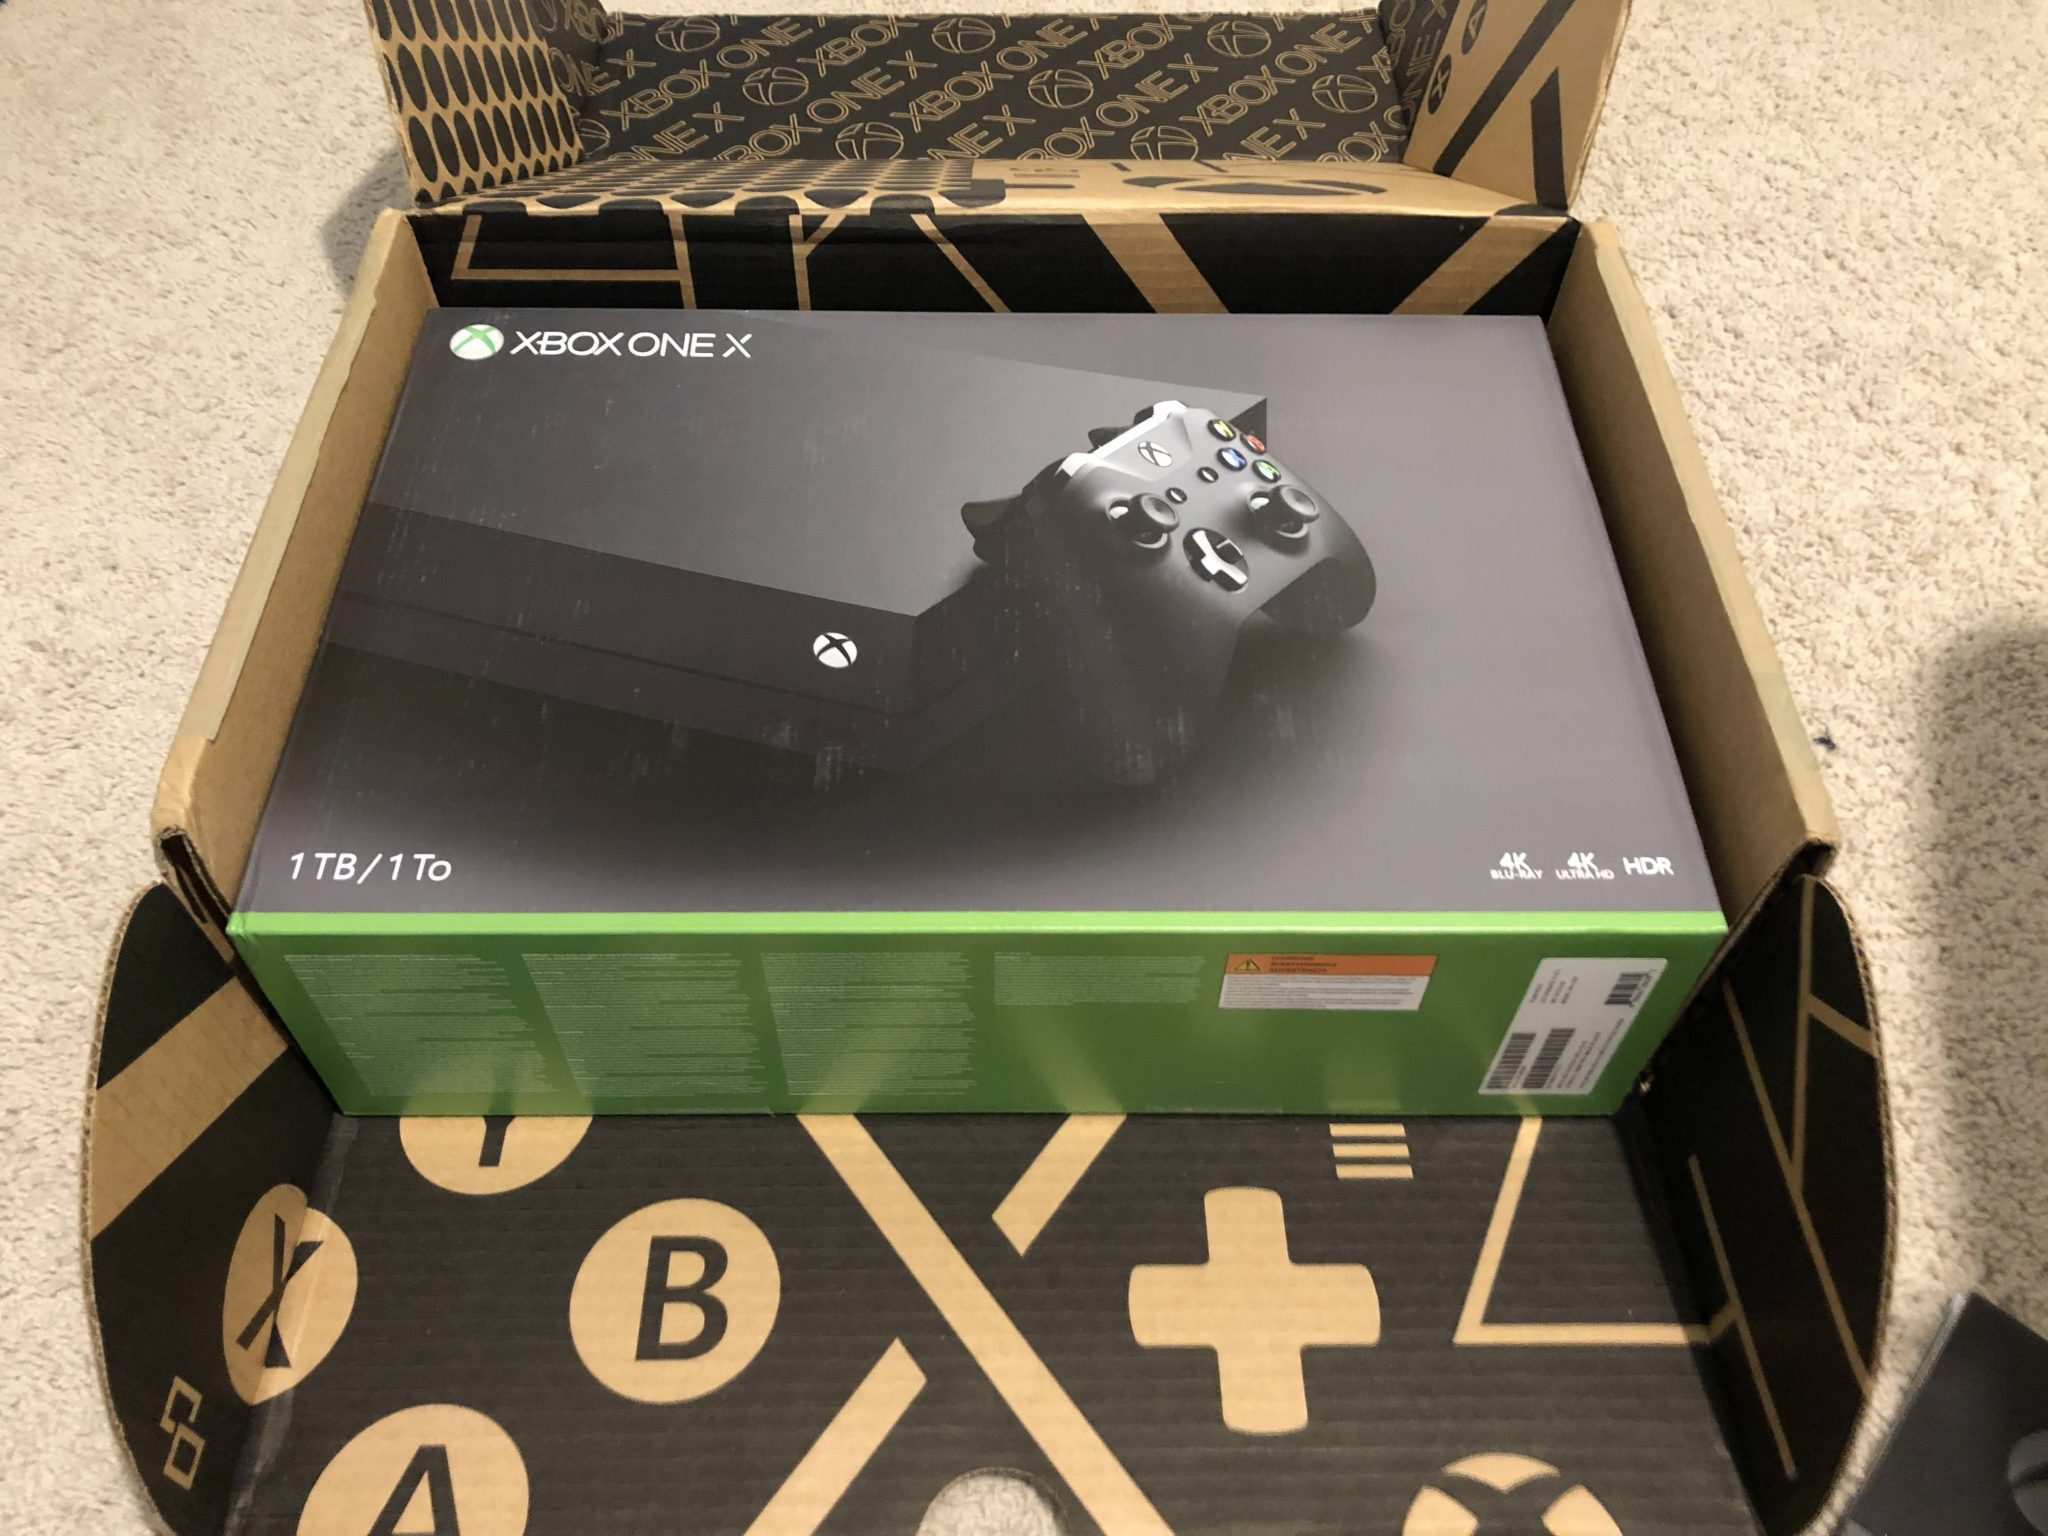 Xbox exec major nelsons secret santa gift was a surprise for this the games that are included in the package are most of the recent releases like call of duty world war ii destiny 2 star wars battlefront 2 among others negle Gallery